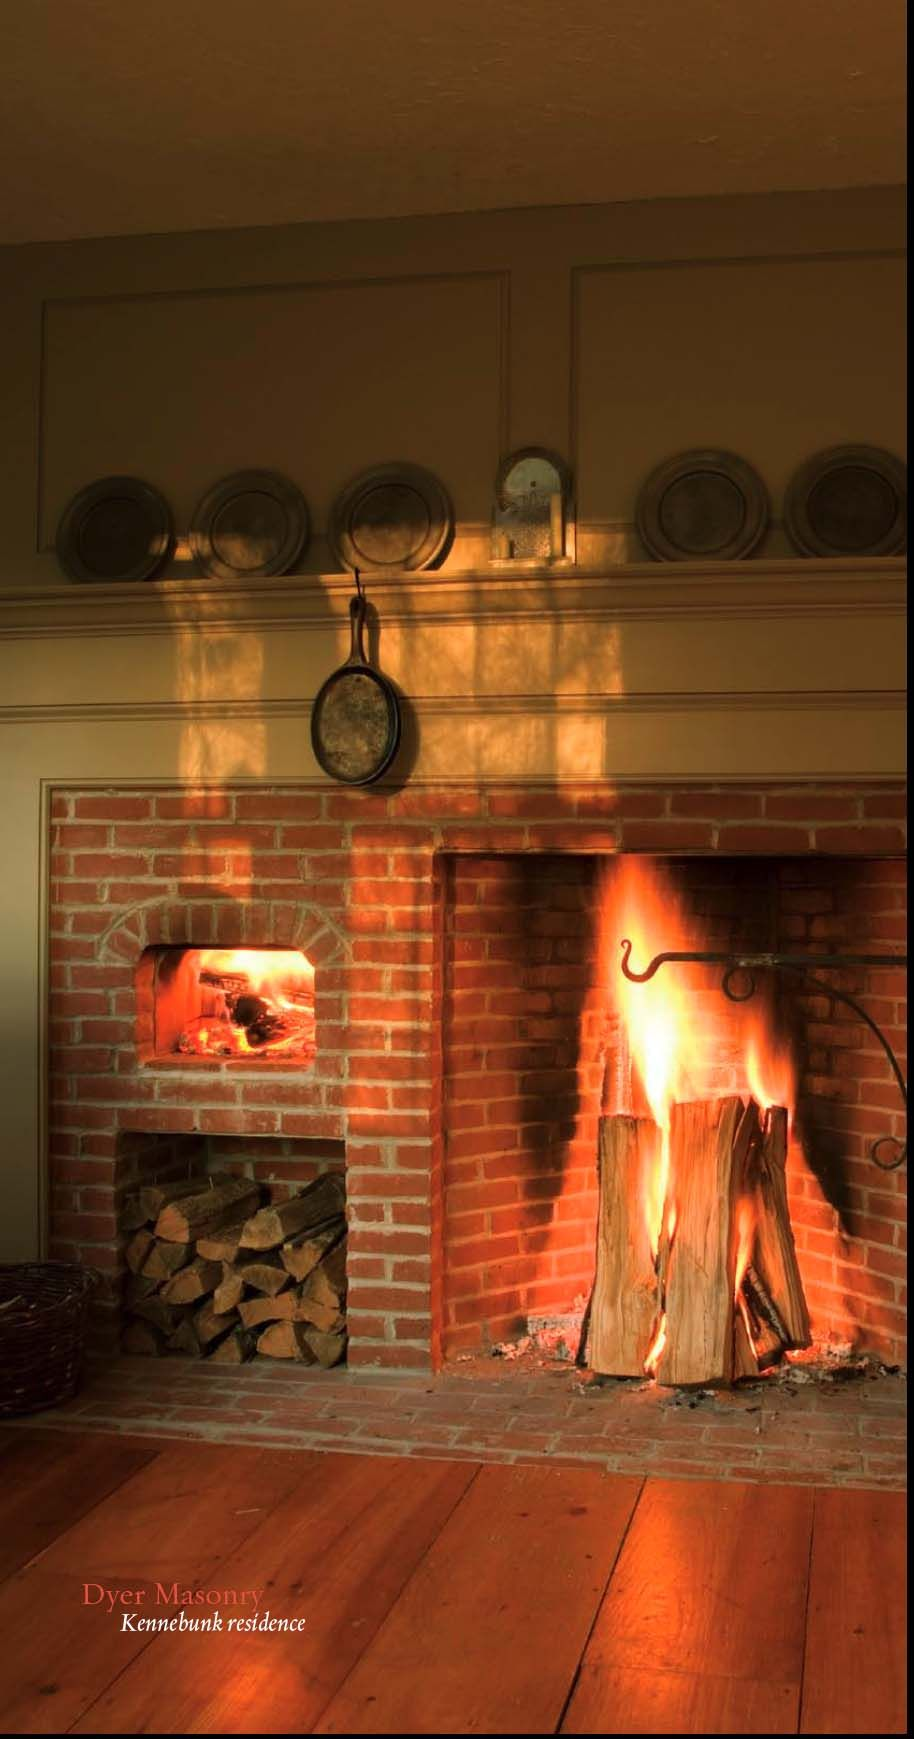 Cooking Fireplace in Maine by Dyer Masonry in Buckley